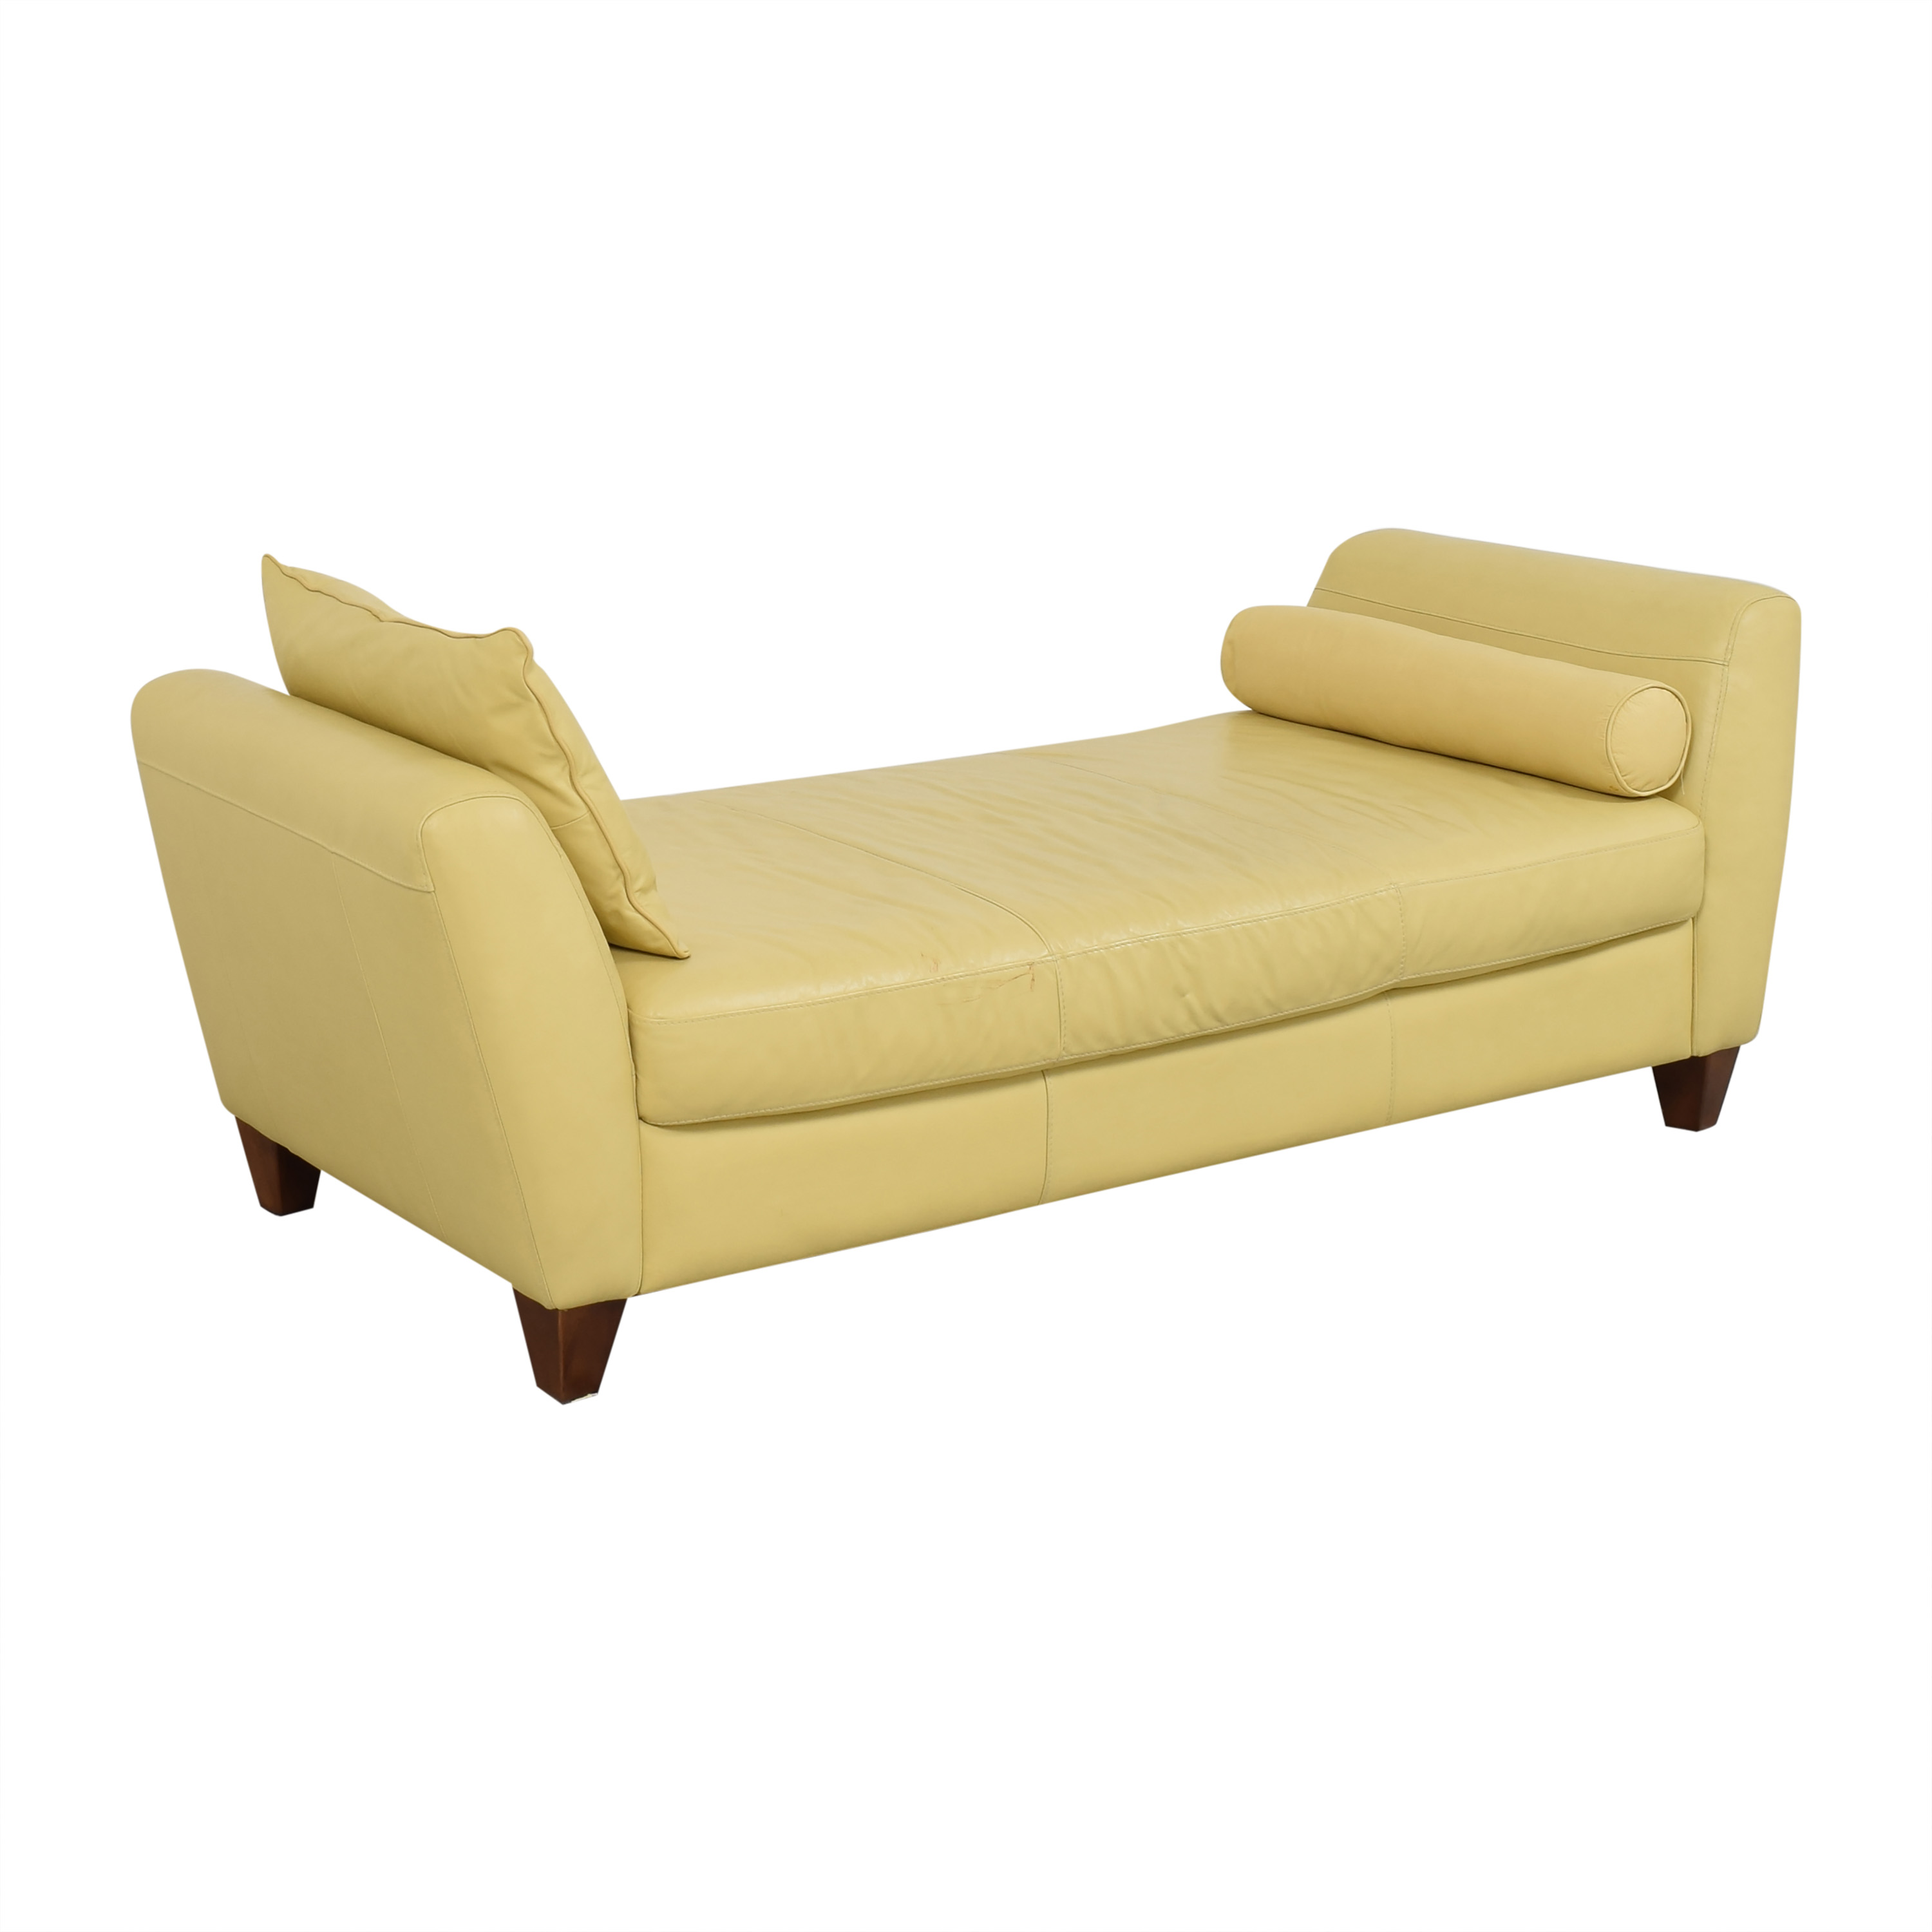 buy Italsofa Italsofa Daybed with Pillows online